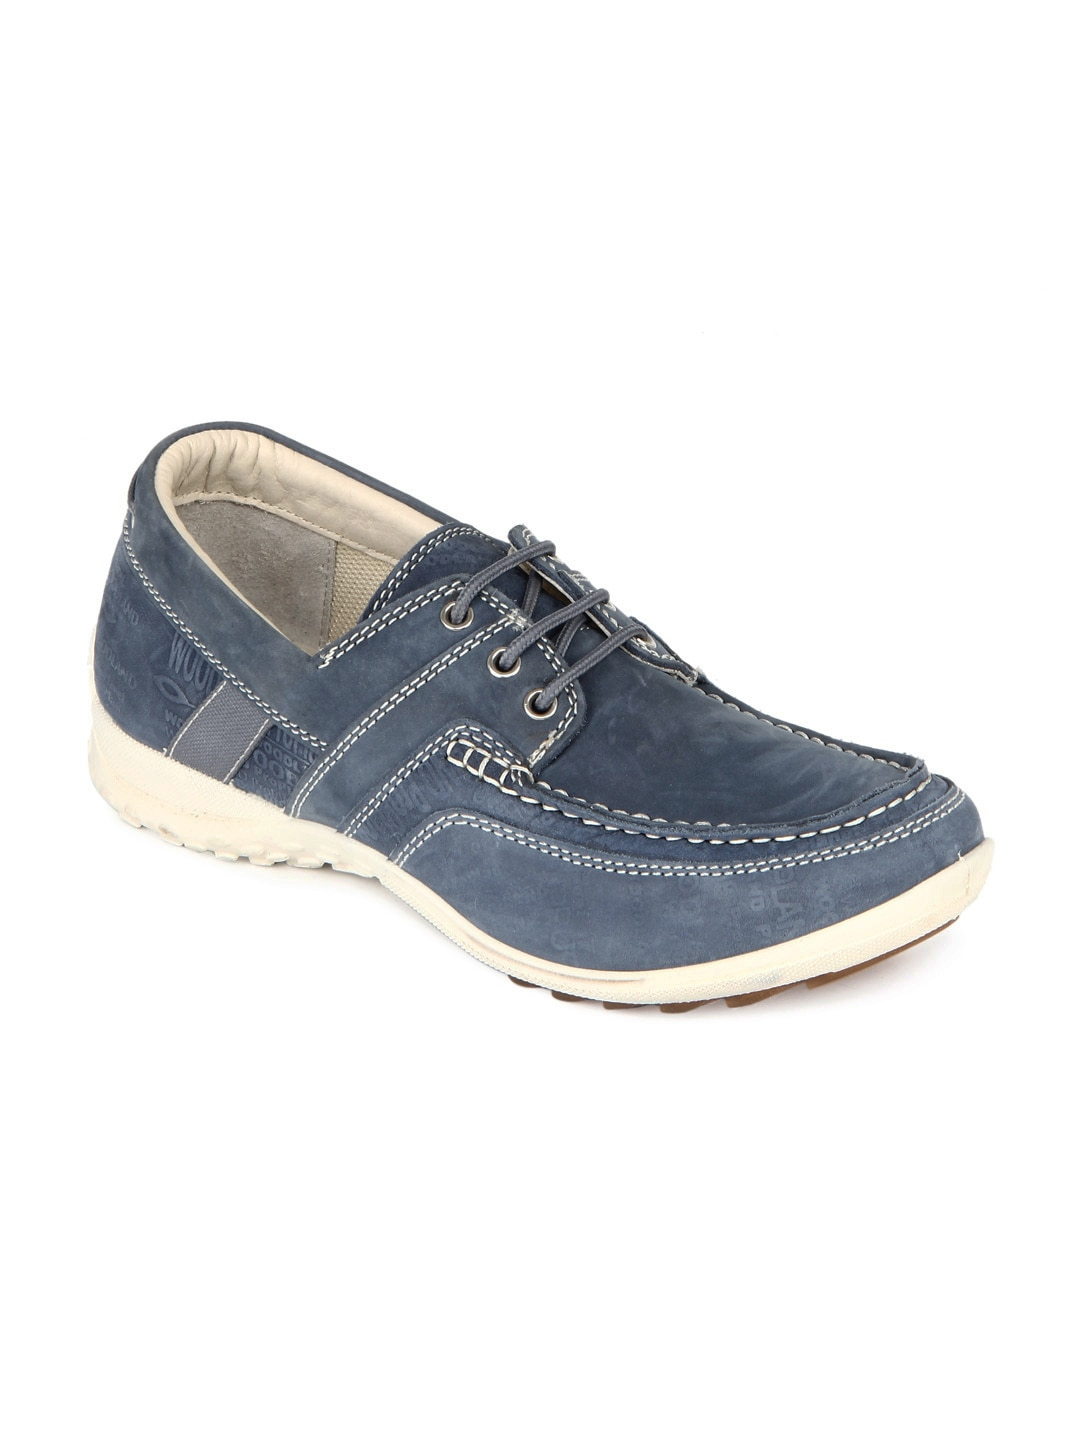 buy woodland blue casual shoes 288 footwear for